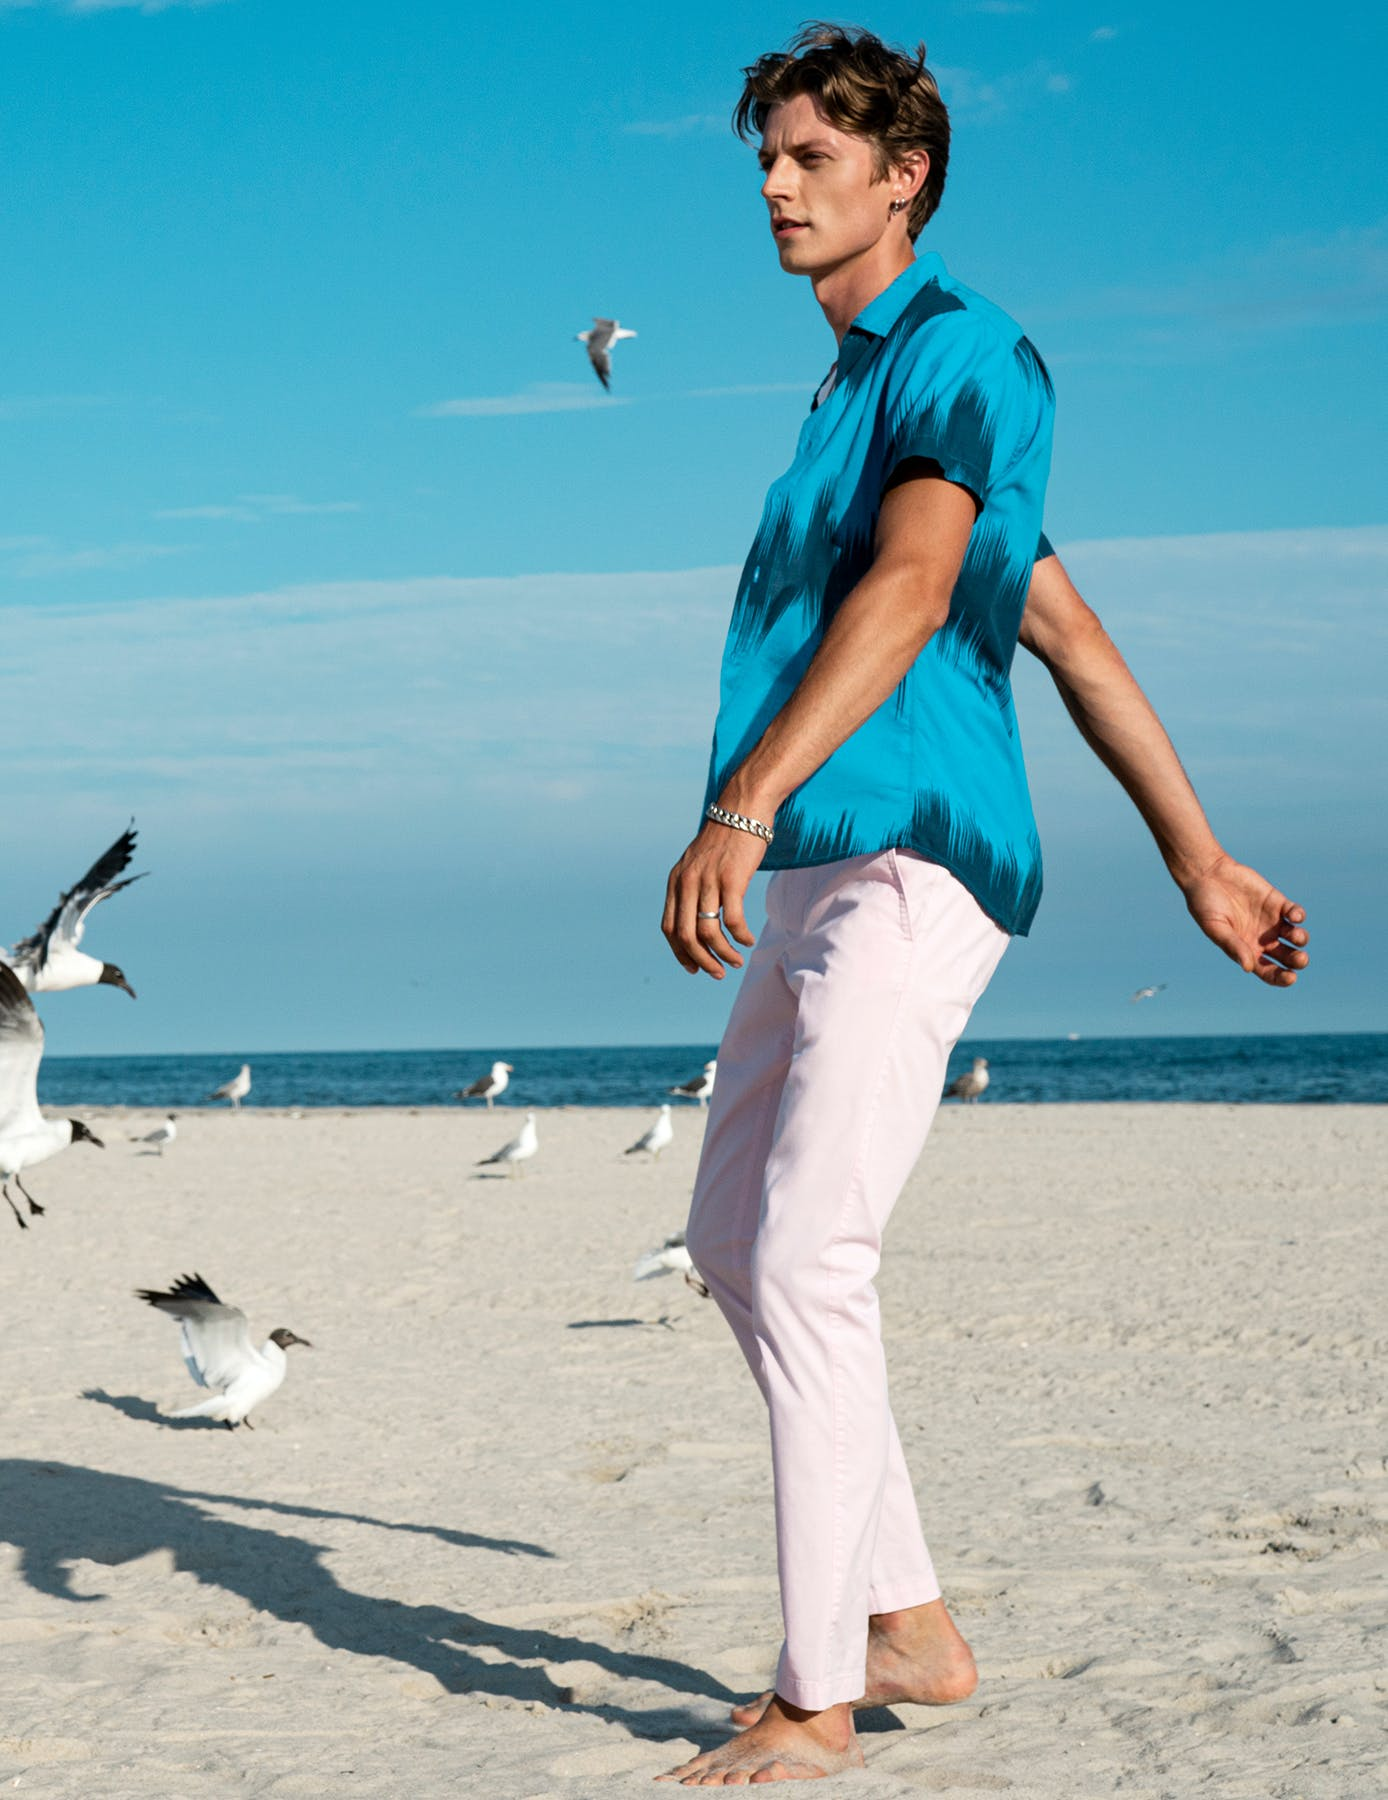 Man on the beach wearing blue Riviera Shirt and pink pants